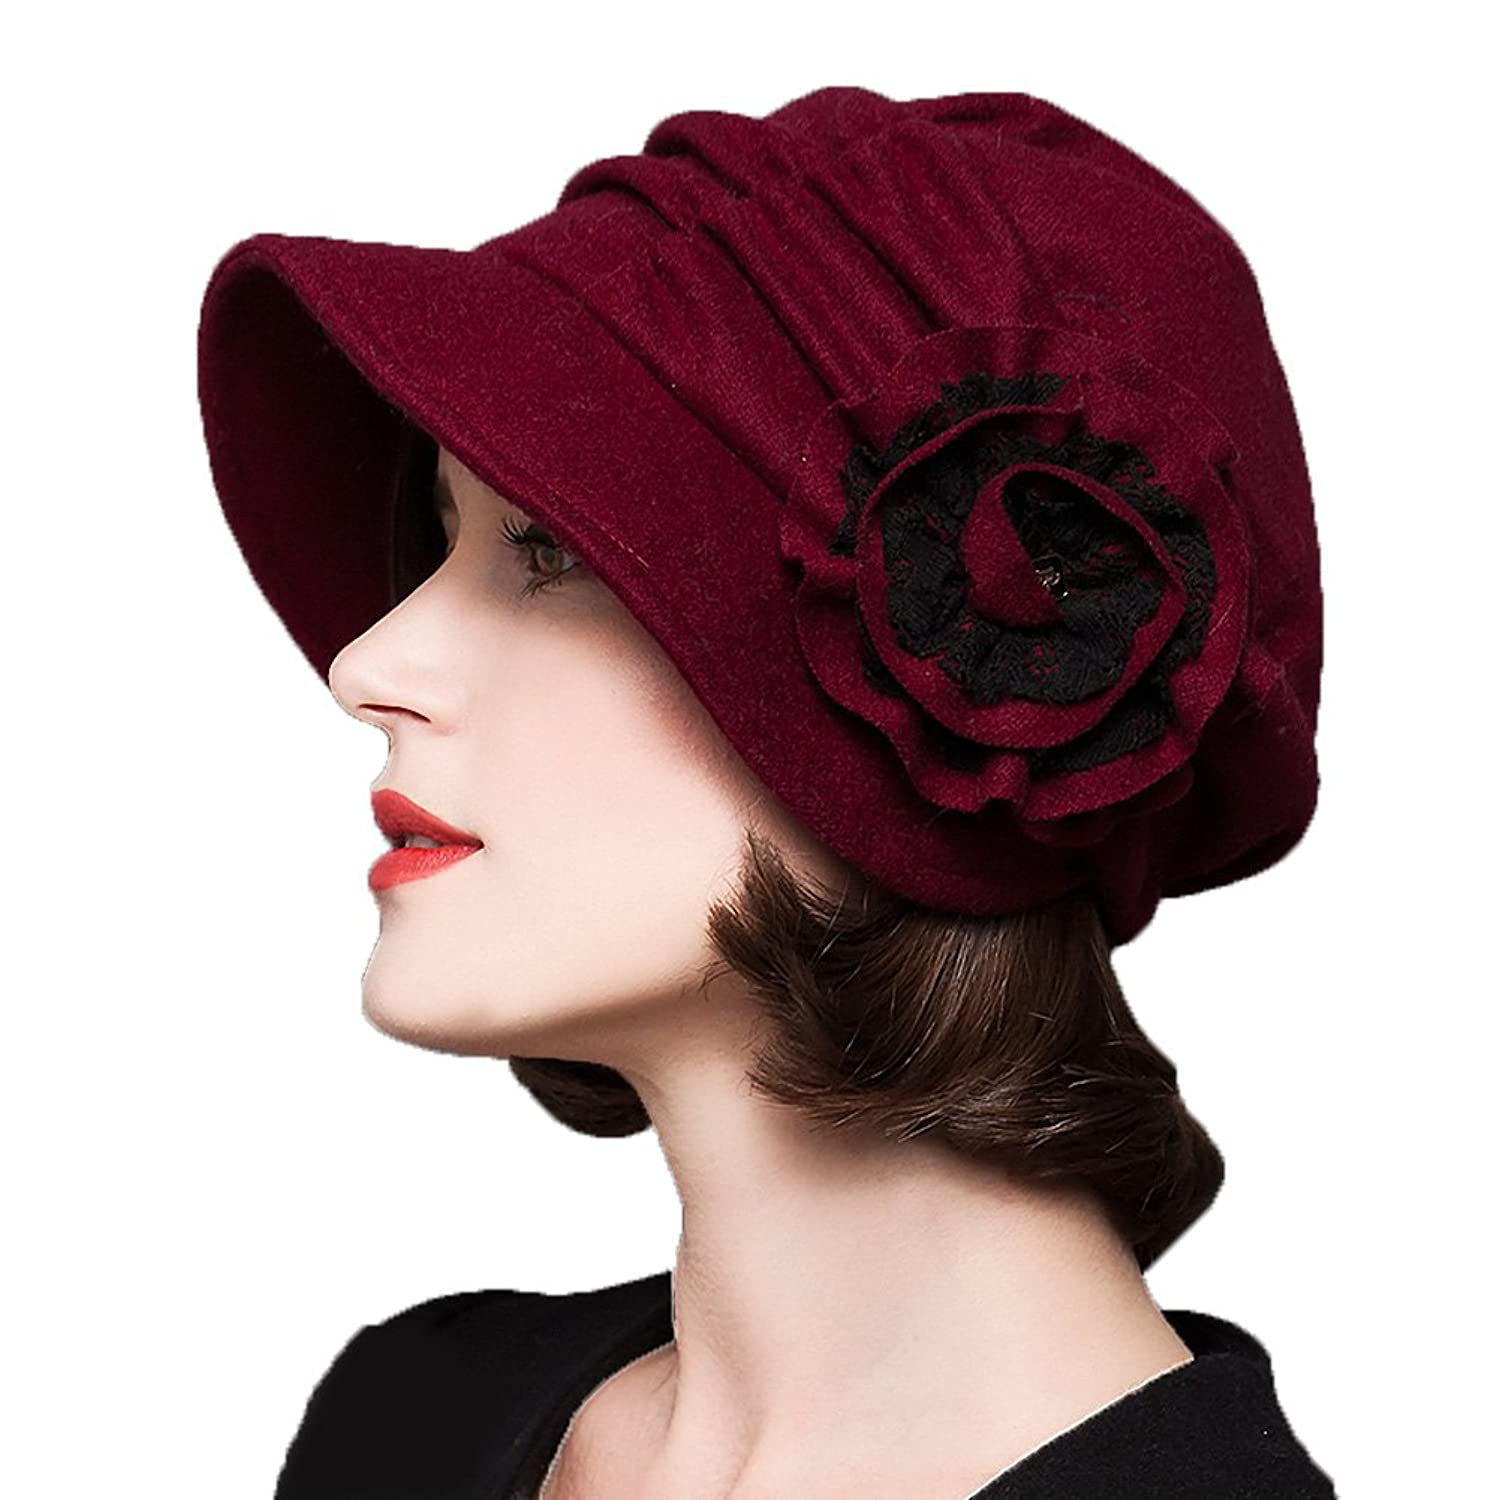 1920s Fashion & Clothing | Roaring 20s Attire Decorative Flowers Wool Beret Maitose Trade Womens Decorative Flowers Wool Beret $28.40 AT vintagedancer.com